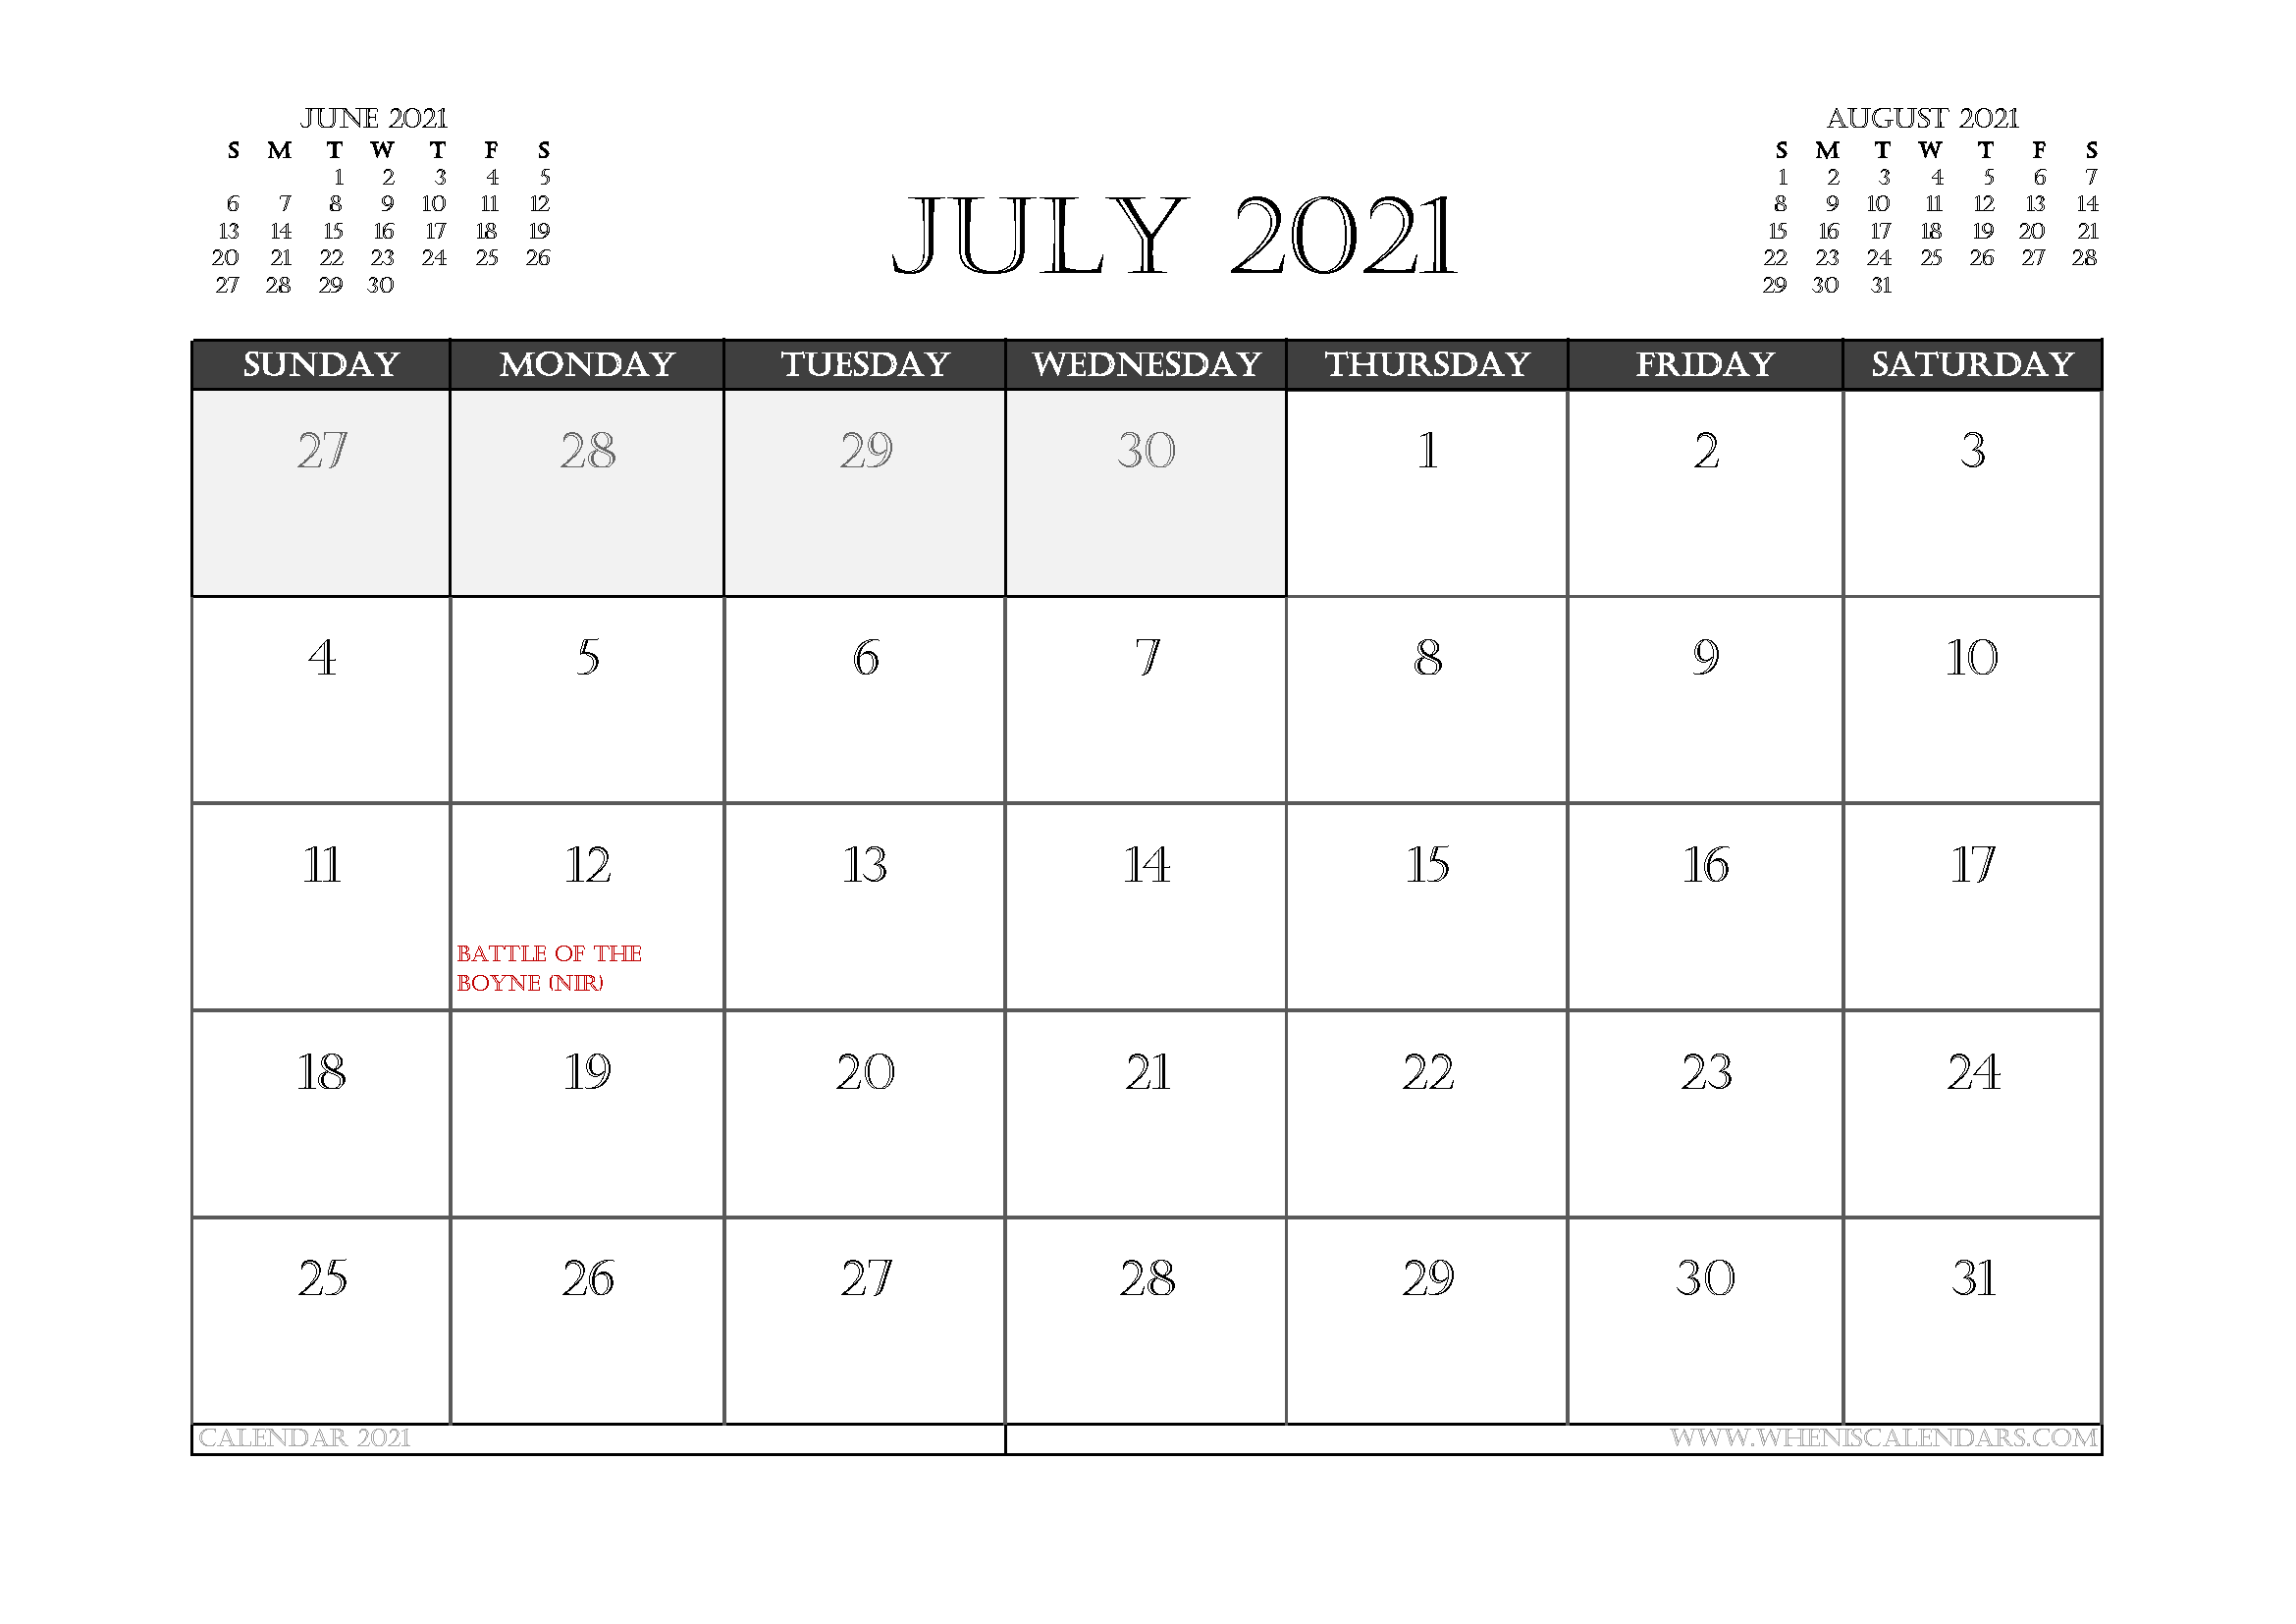 July 2021 Calendar Uk Printable In 2020 | Calendar Uk, 2021